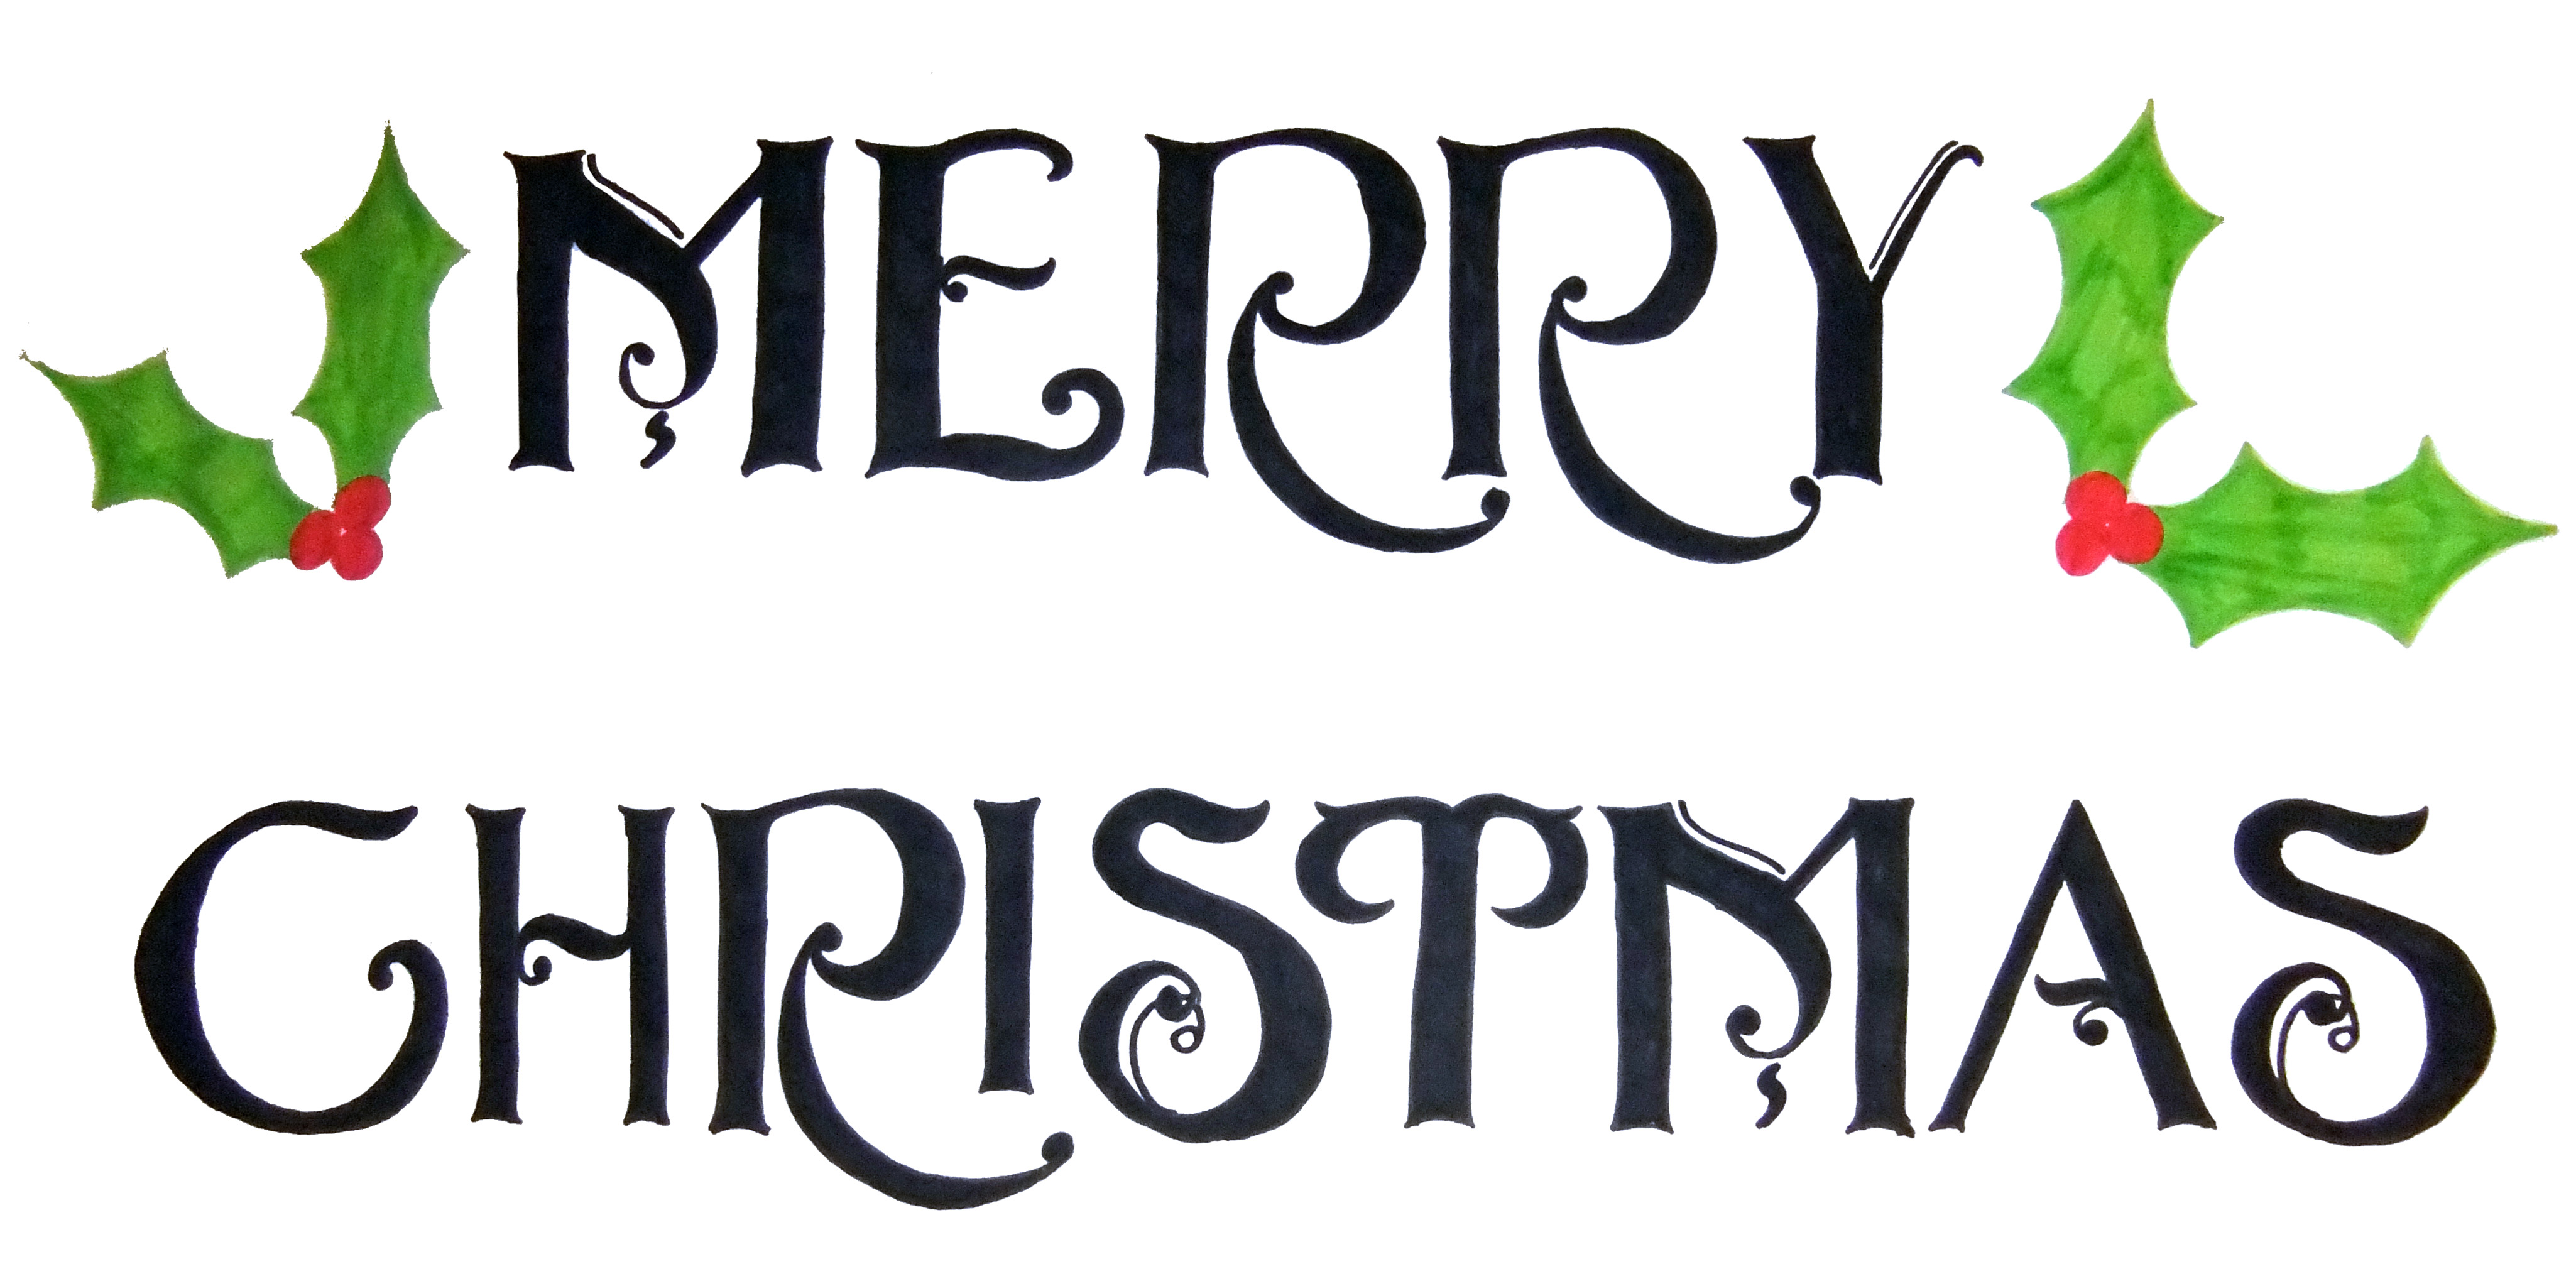 Christmas Word Art - Cliparts.co